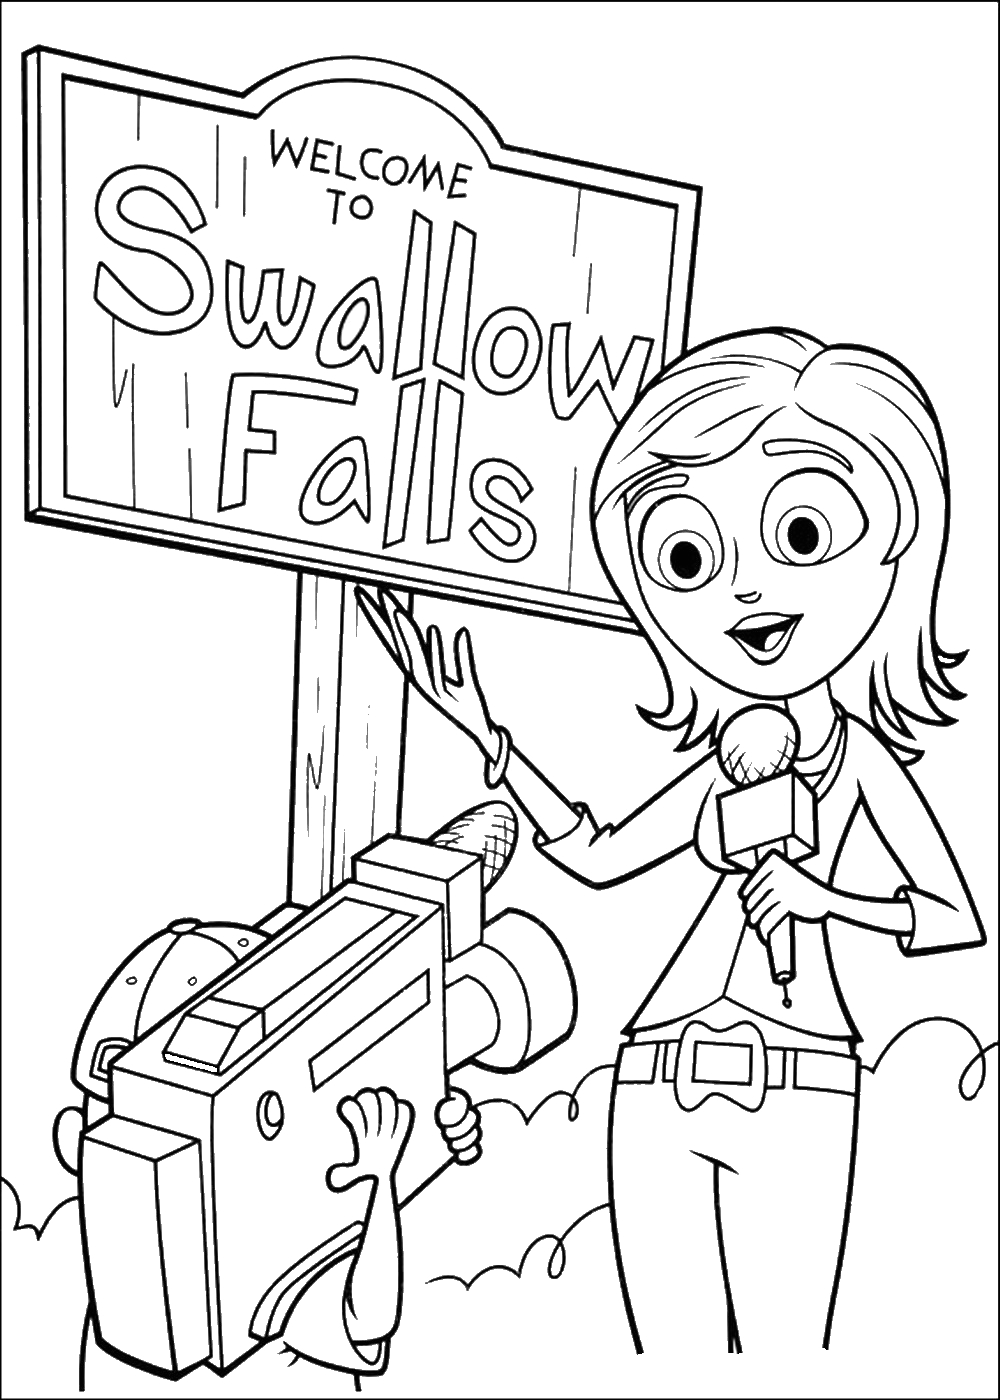 Coloring Pages Cloudy with A Chance Of Meatballs Cloudy with A Chance Of Meatballs Coloring Pages